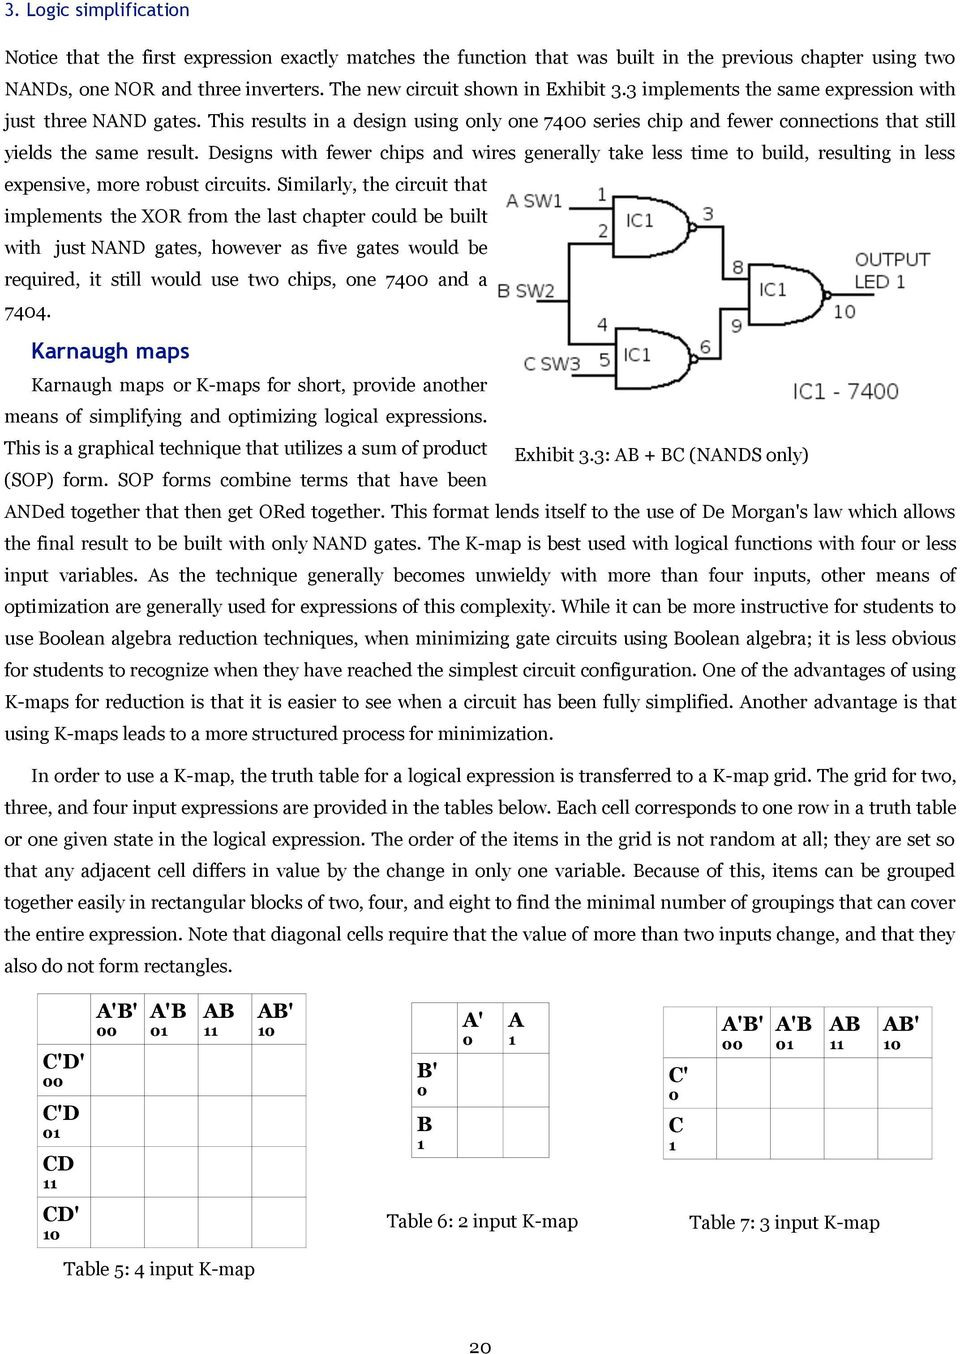 Introduction To Digital Logic With Laboratory Exercises Pdf How Build A Touch Sensor Circuit Nand Gate Chip This Results In Design Using Only One 74 Series And Fewer Connections That Still